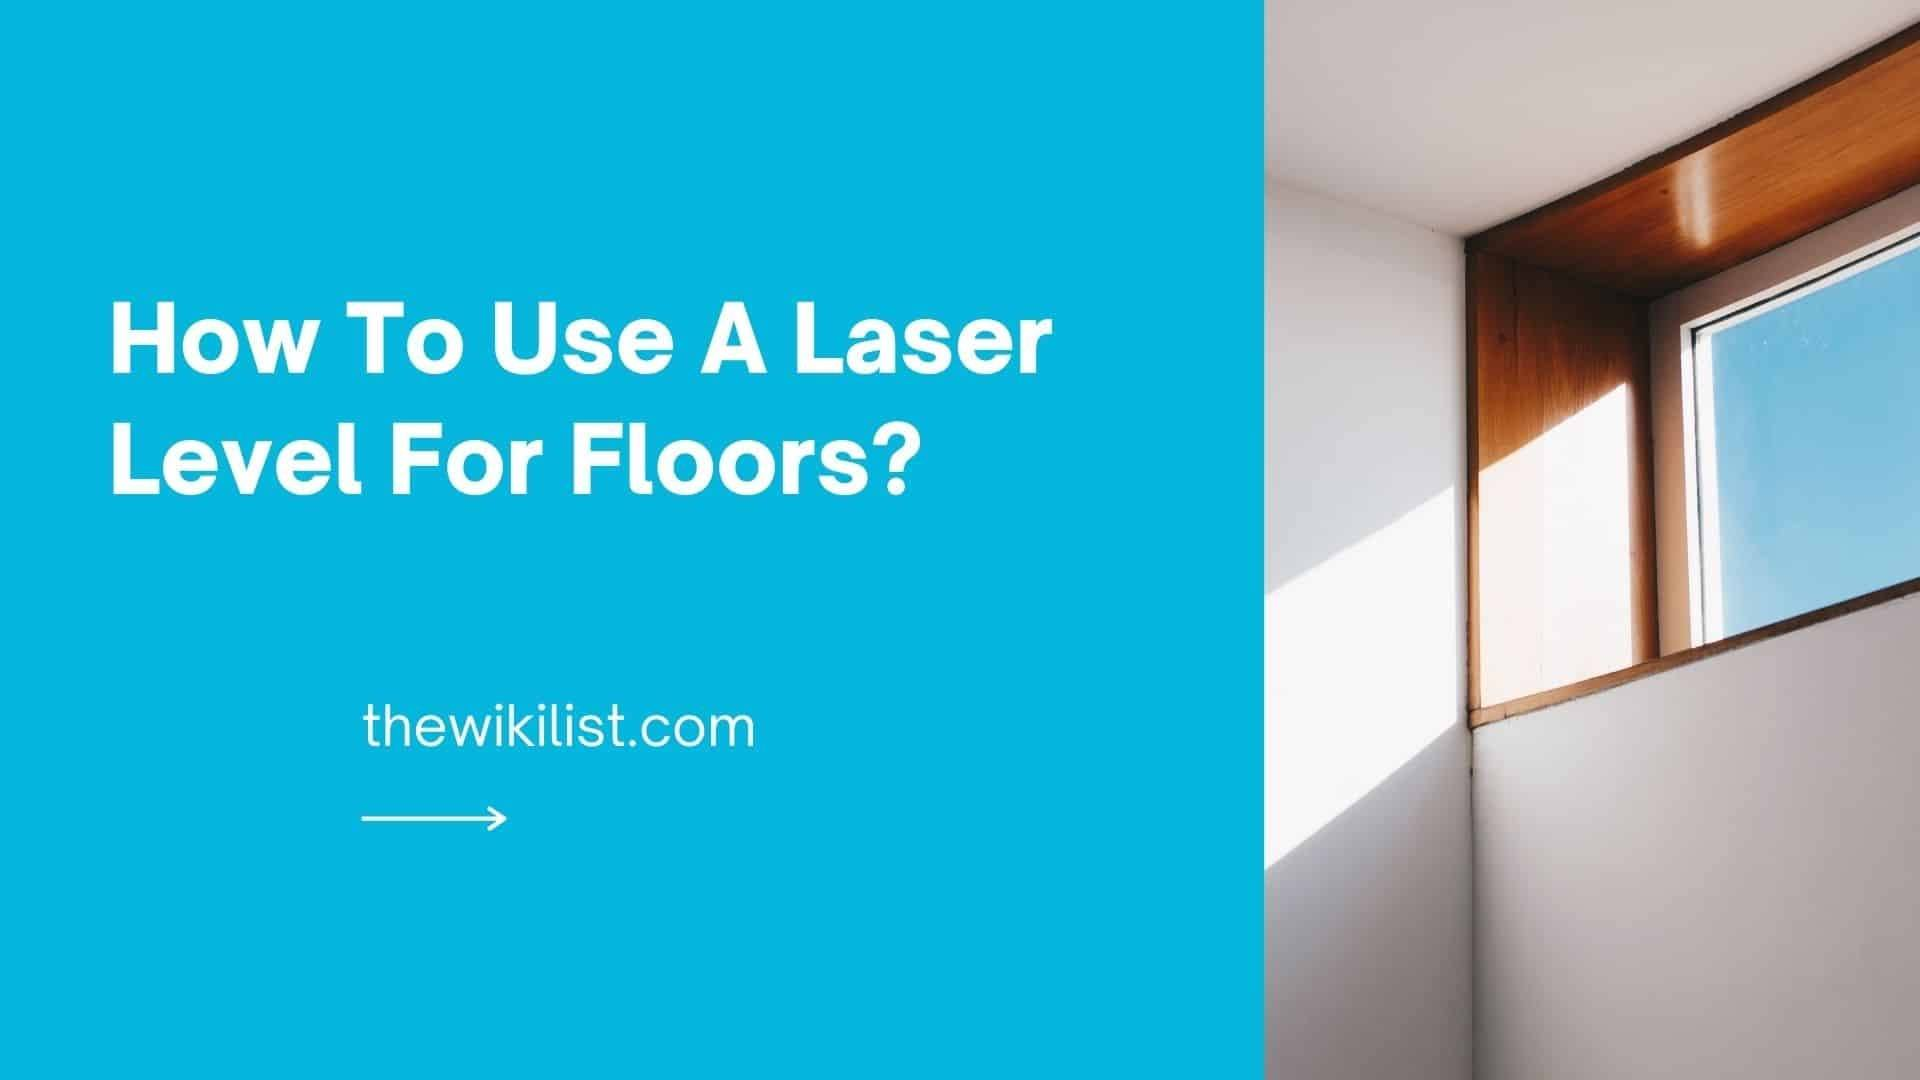 How To Use A Laser Level For Floors